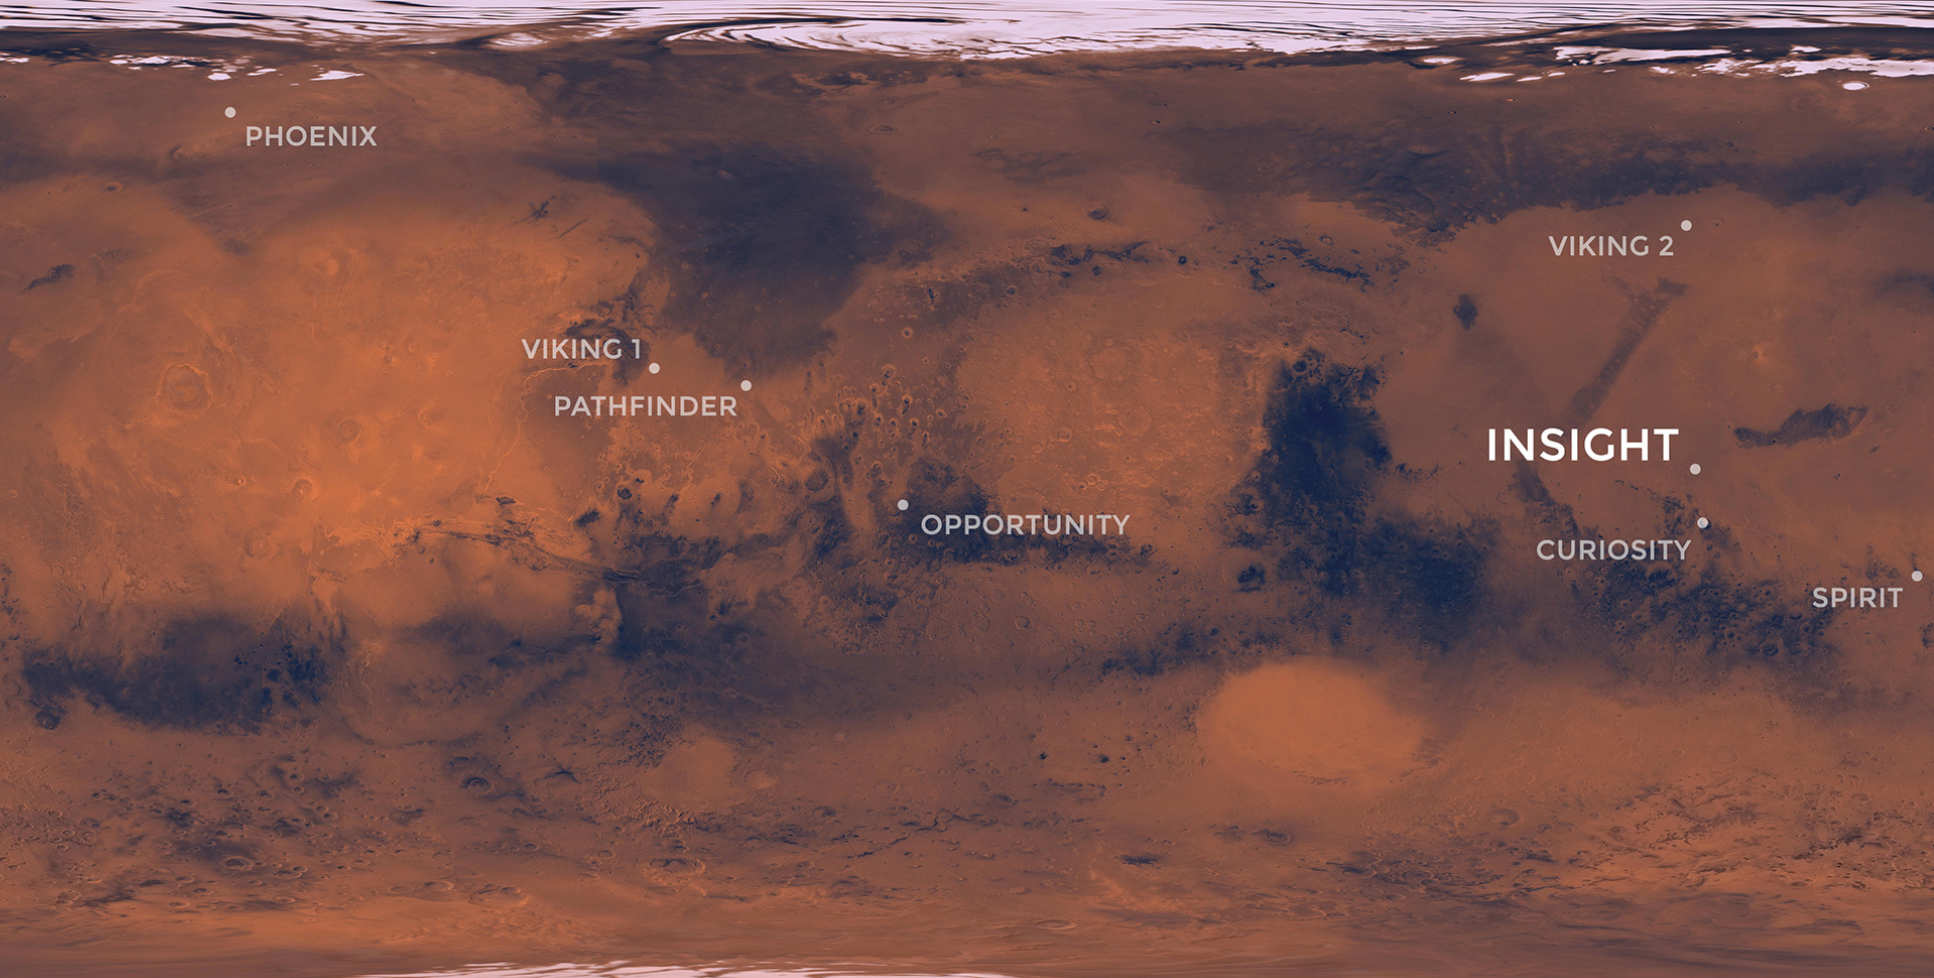 A map of Elysium Planitia, Mars.